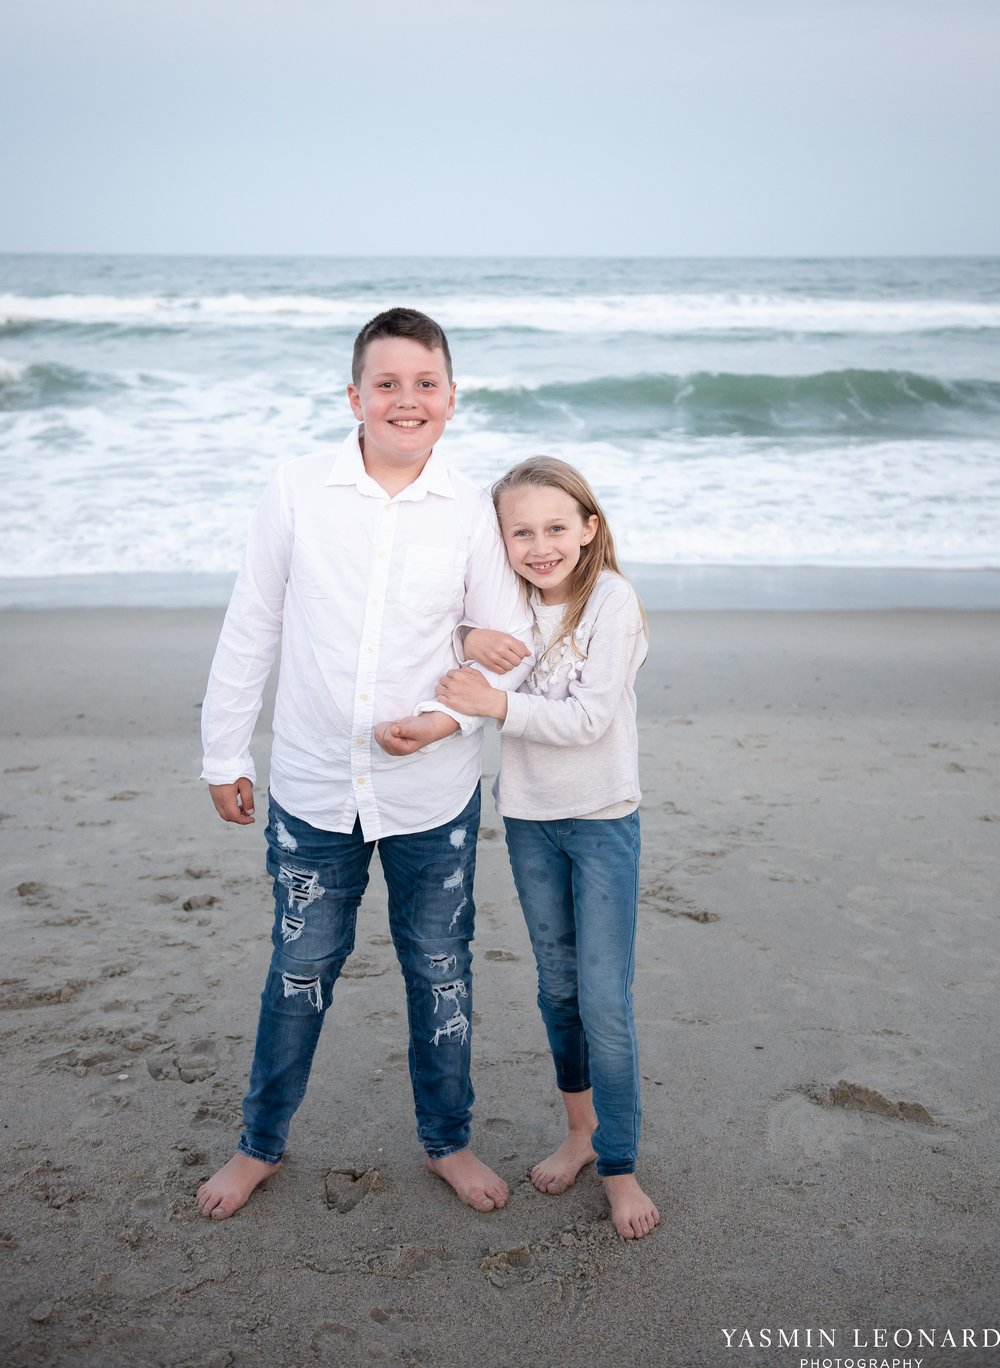 Sibling Beach Pictures - Caorlina Beach Portraits - Kure Beach Portraits - Sibling Beach Pictures - Family Pictures at the Beach - Seaguls and Children - Summer Picture Ideas - Sibling Poses-13.jpg